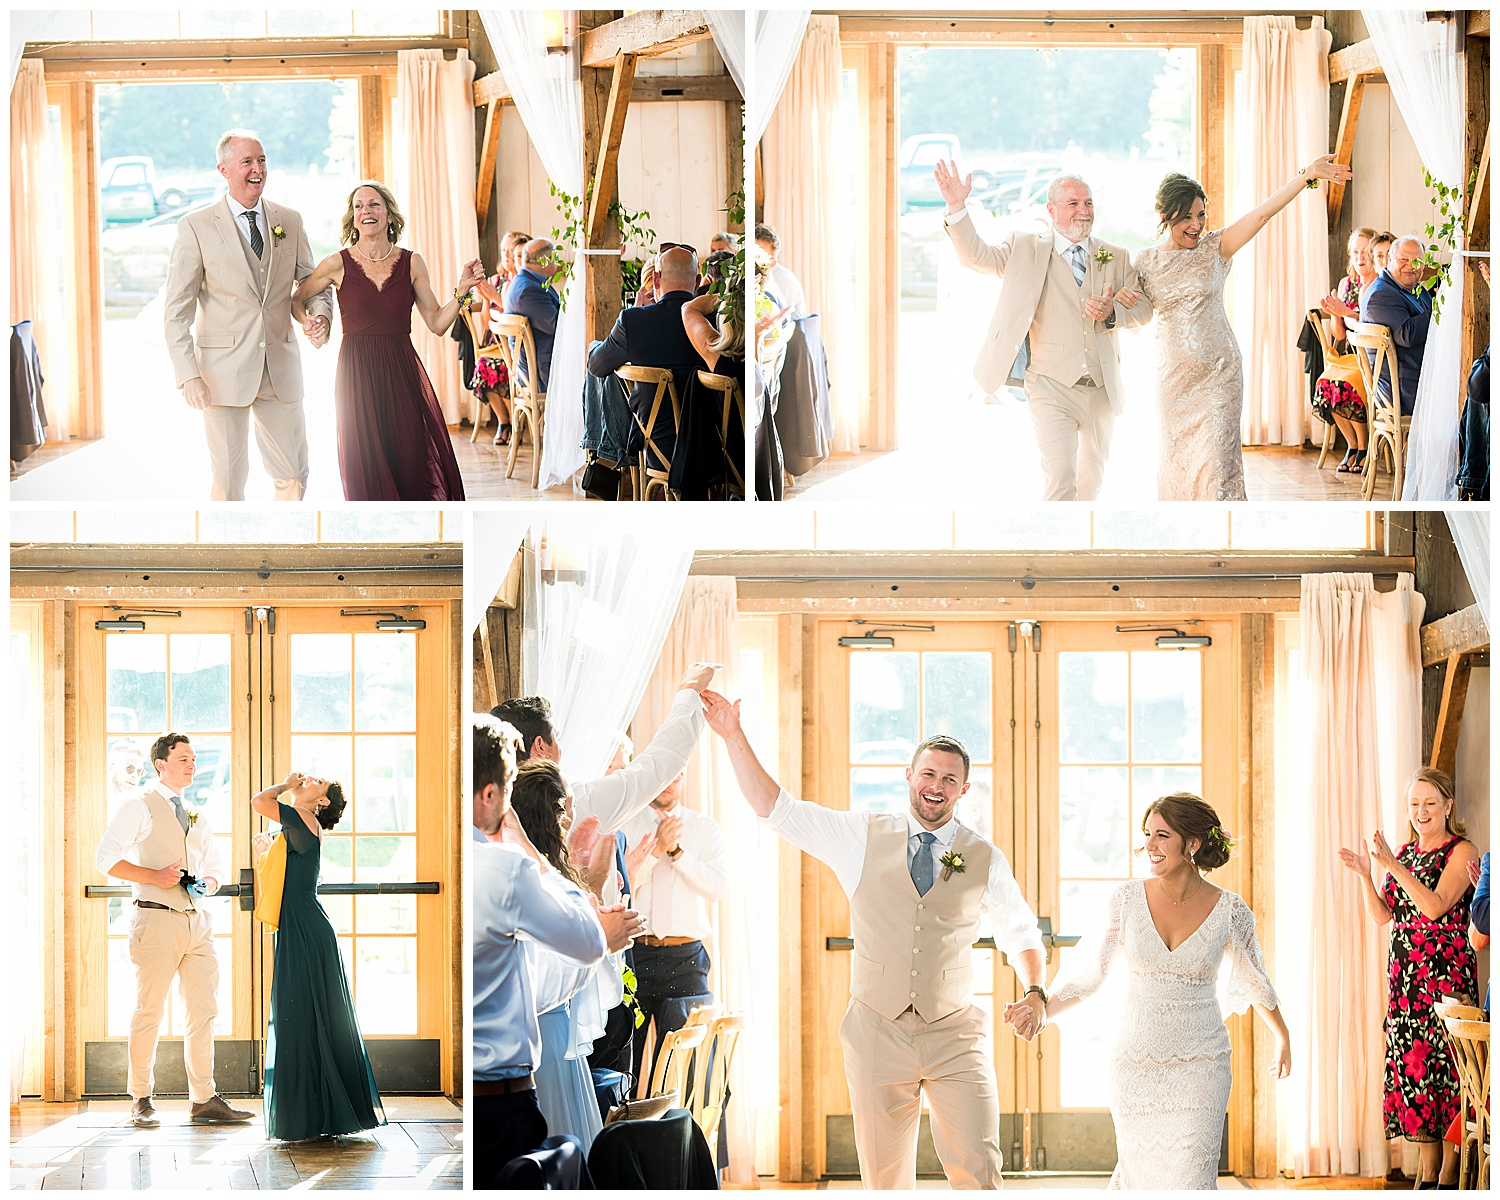 Valley View Farm Wedding - Reception Photos